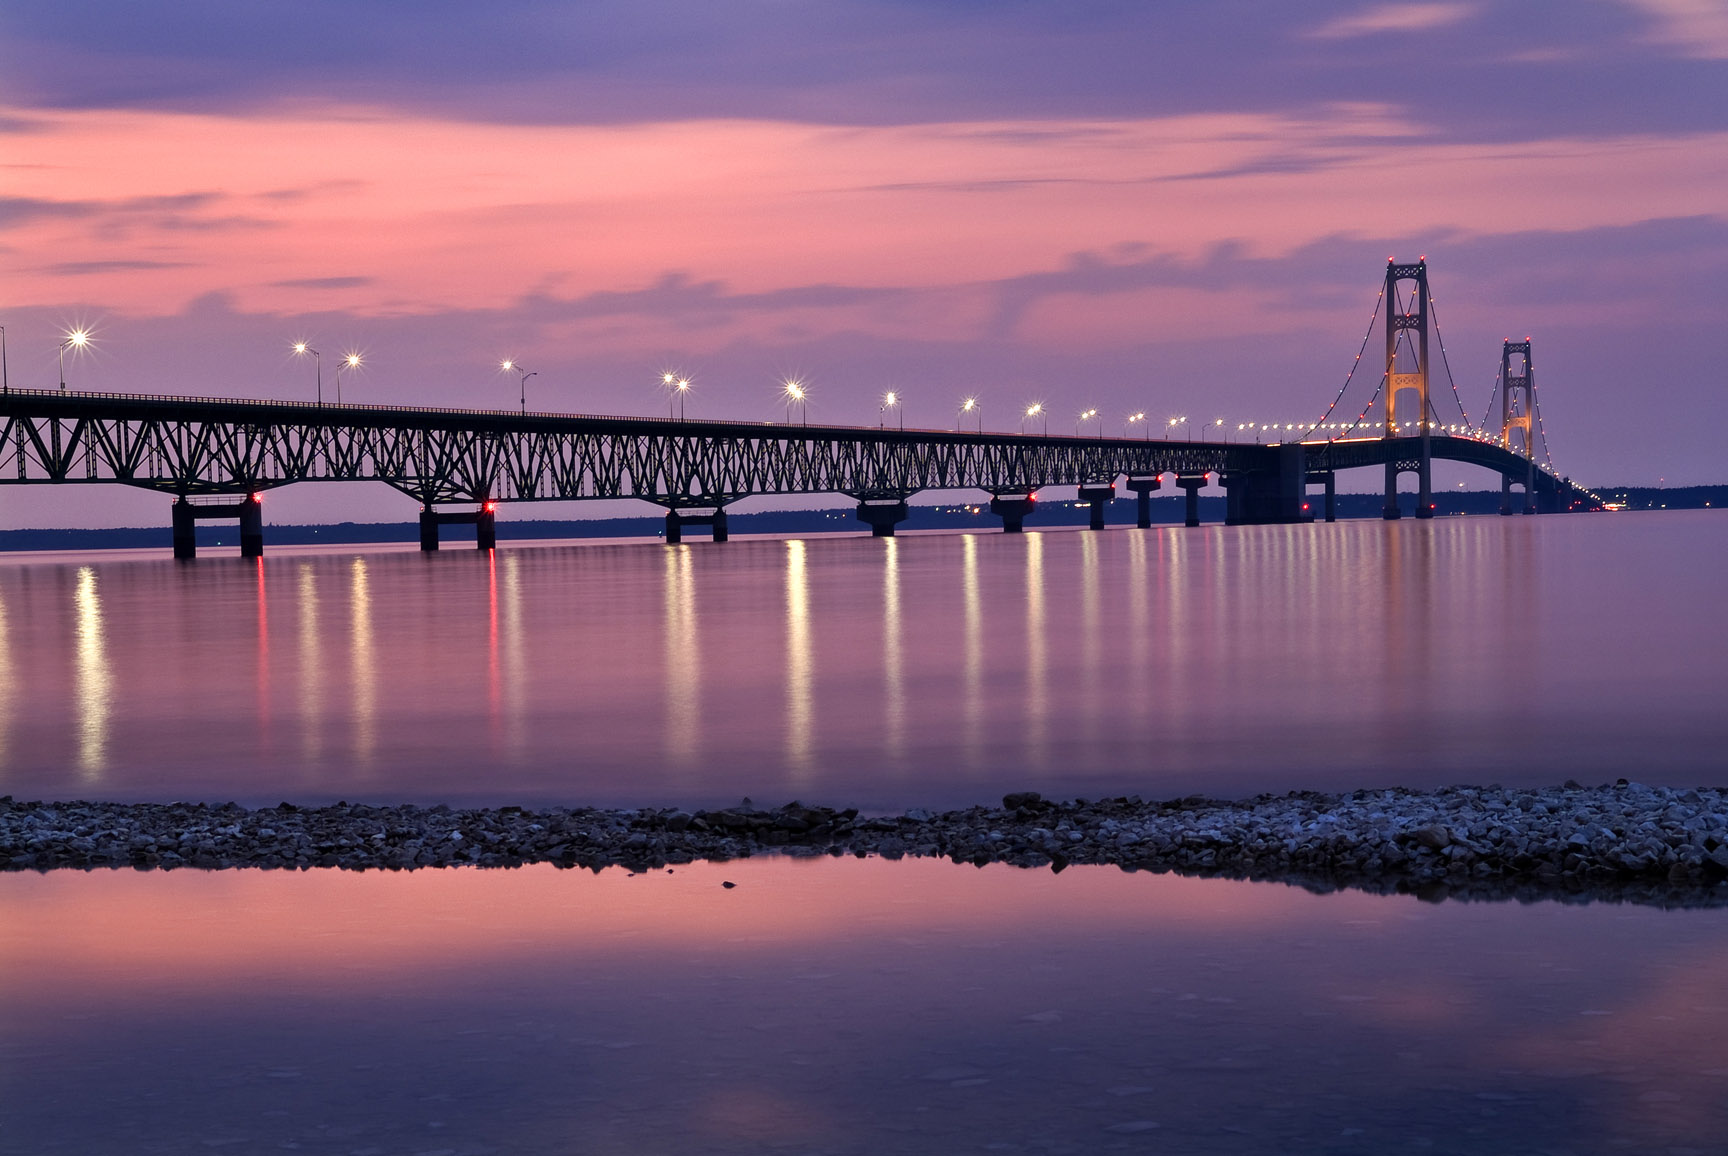 PhotoOfMackinawBridge